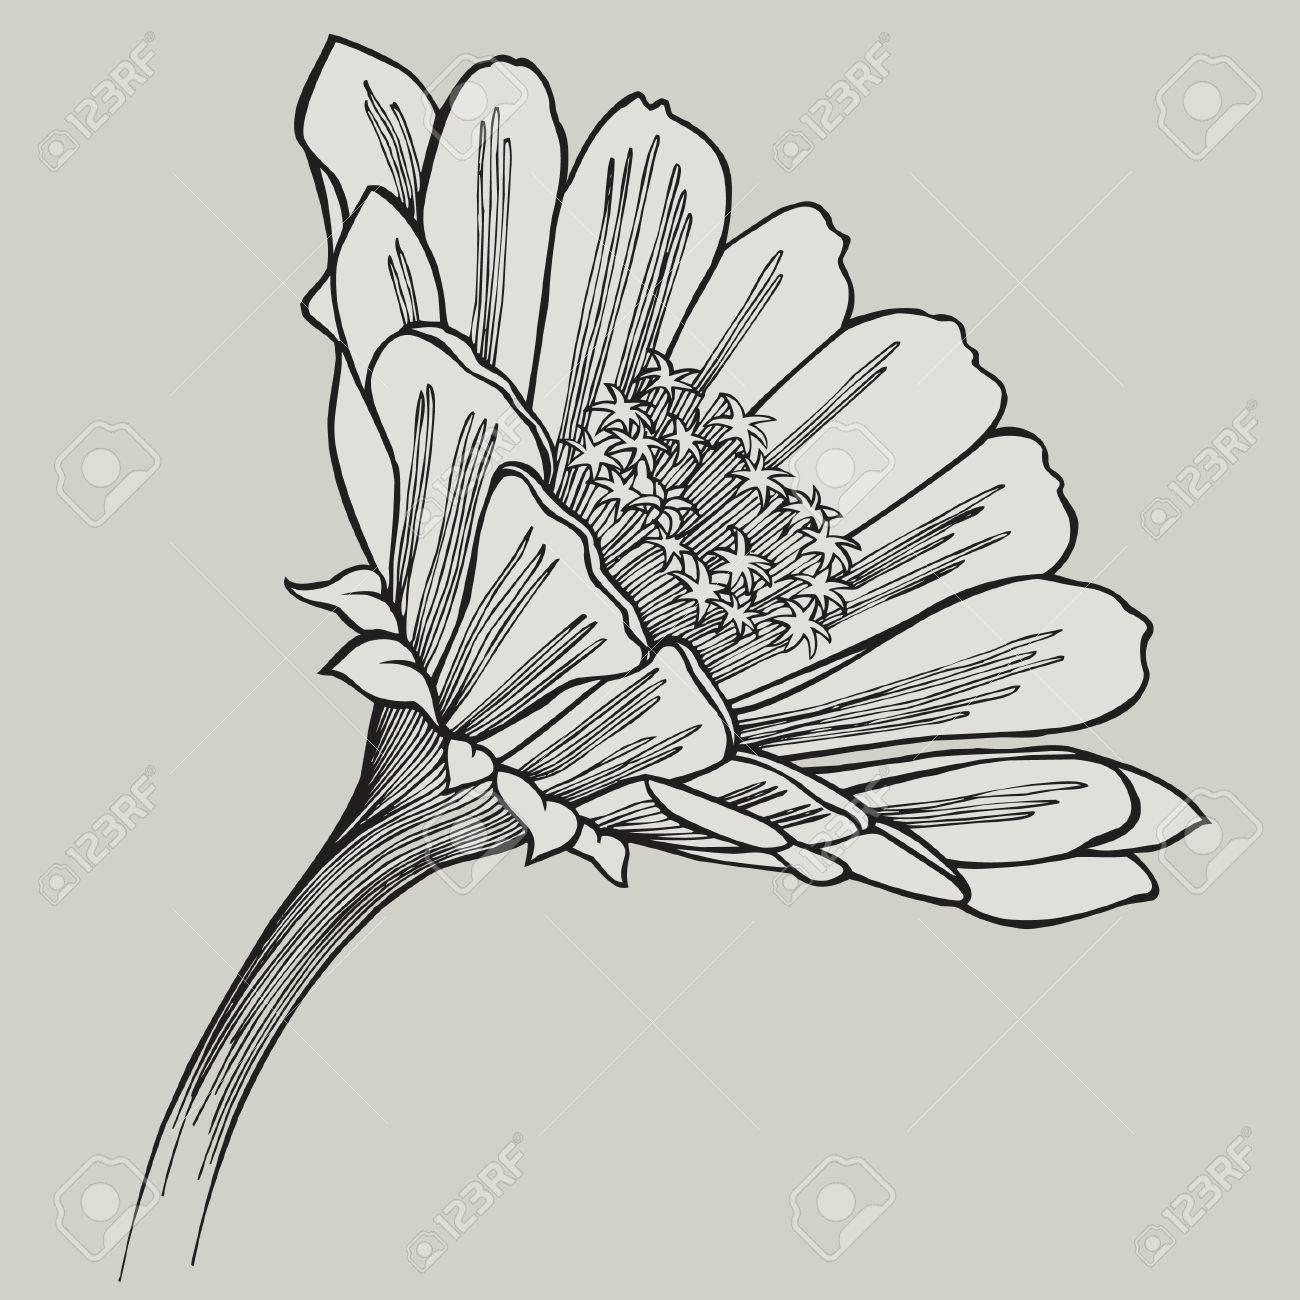 Zinnia Flower Hand Drawing Vector Illustration Royalty Free Cliparts Vectors And Stock Illustration Image 37455173